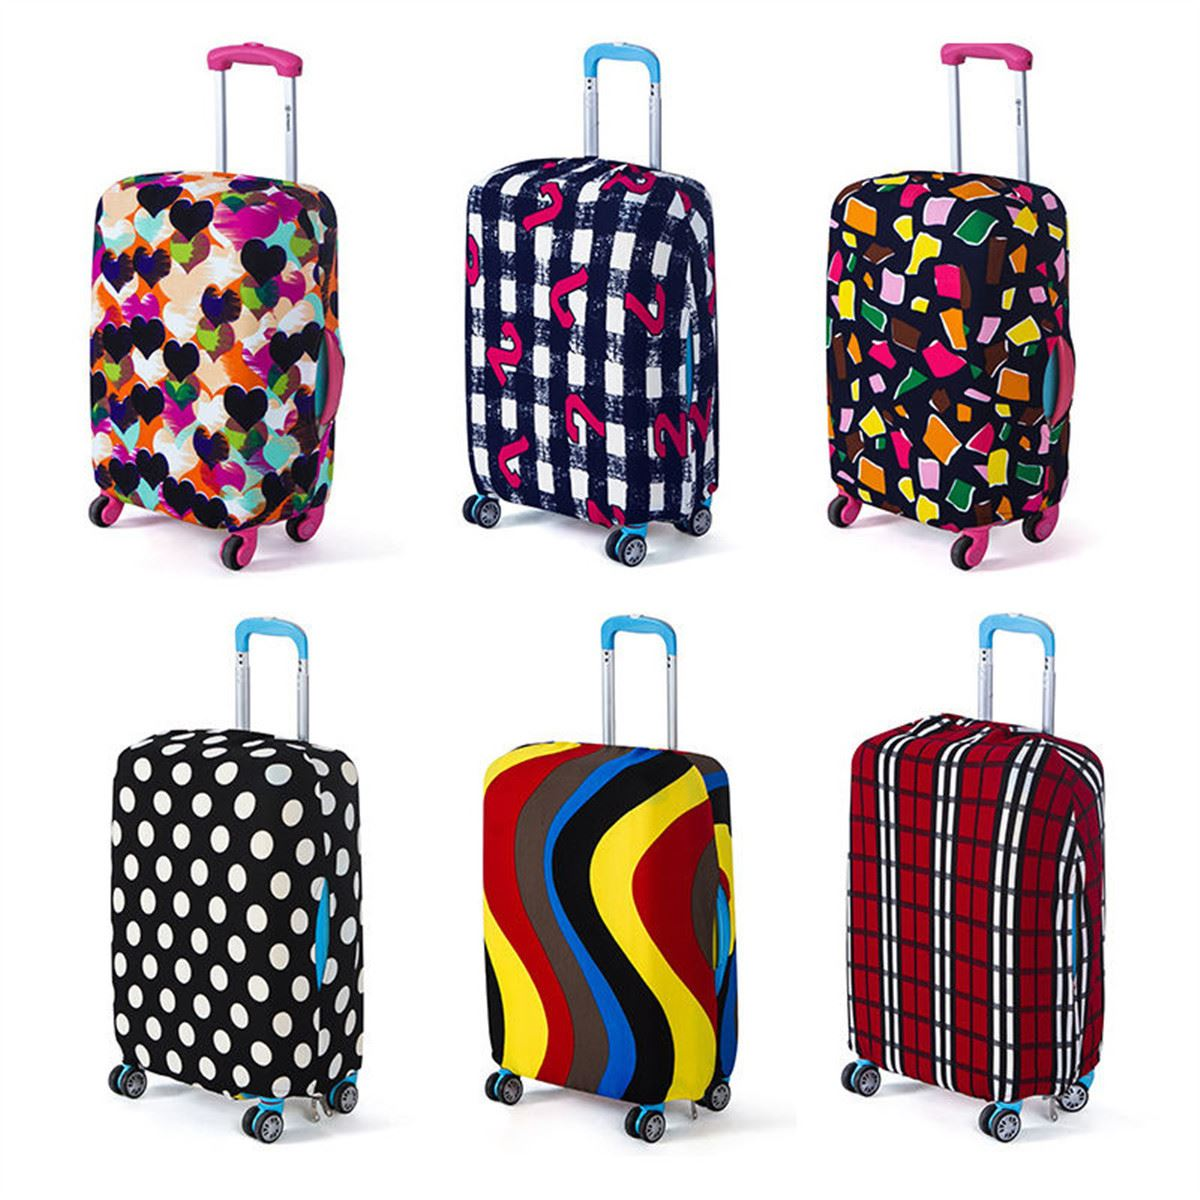 Travel Luggage Dust cover Travel Luggage Cover Protective Suitcase Cover Trolley Case for 18 to 20inch Bag Accessories Parts 2mp poe ip camera 1080p onvif 2 4 sony imx323 sensor indoor outdoor vandalproof 30m ir 2 8 12mm zoom lens cameras de seguranca